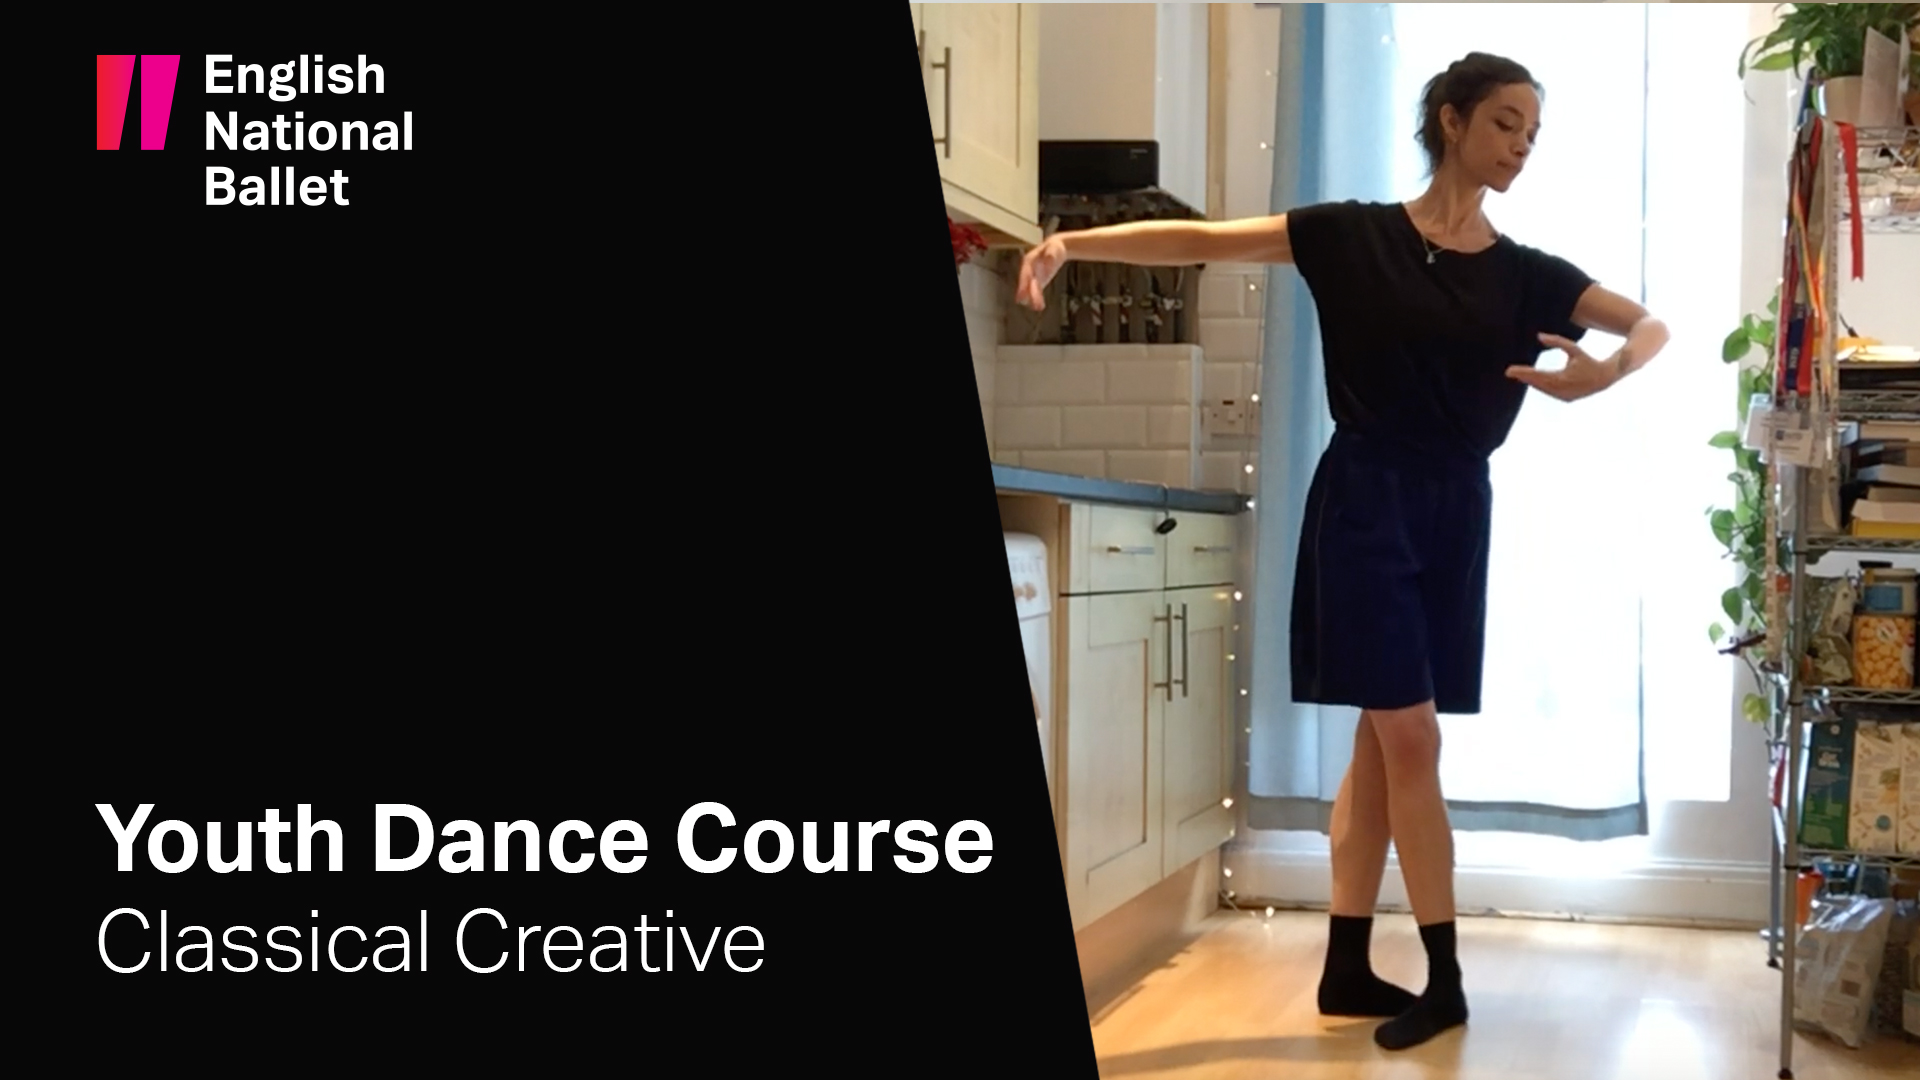 Youth Dance Course: Classical Creative | English National Ballet